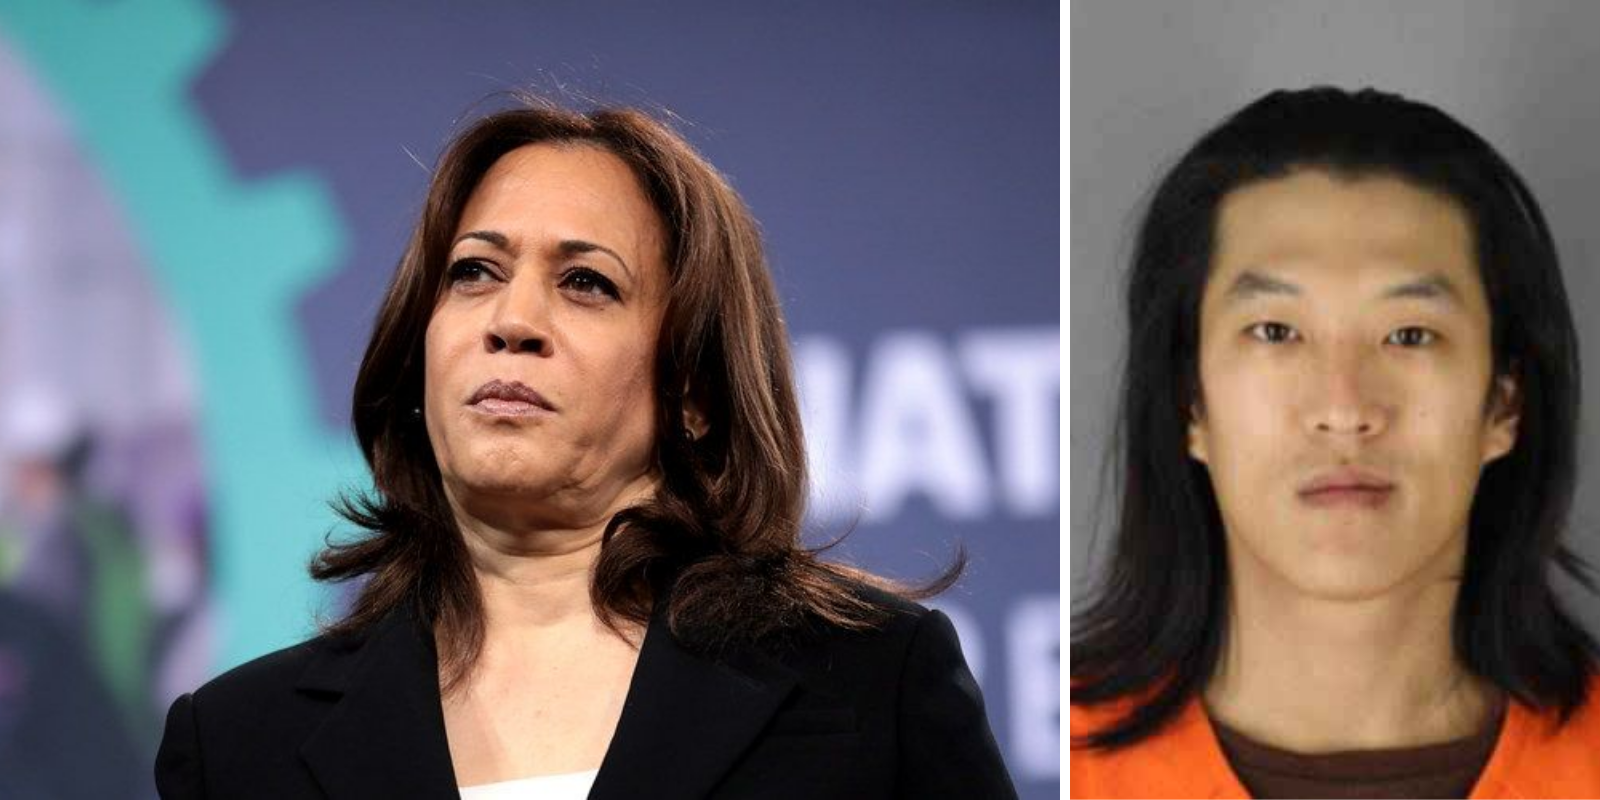 Rioter freed twice by Kamala Harris-supported bail fund arrested again